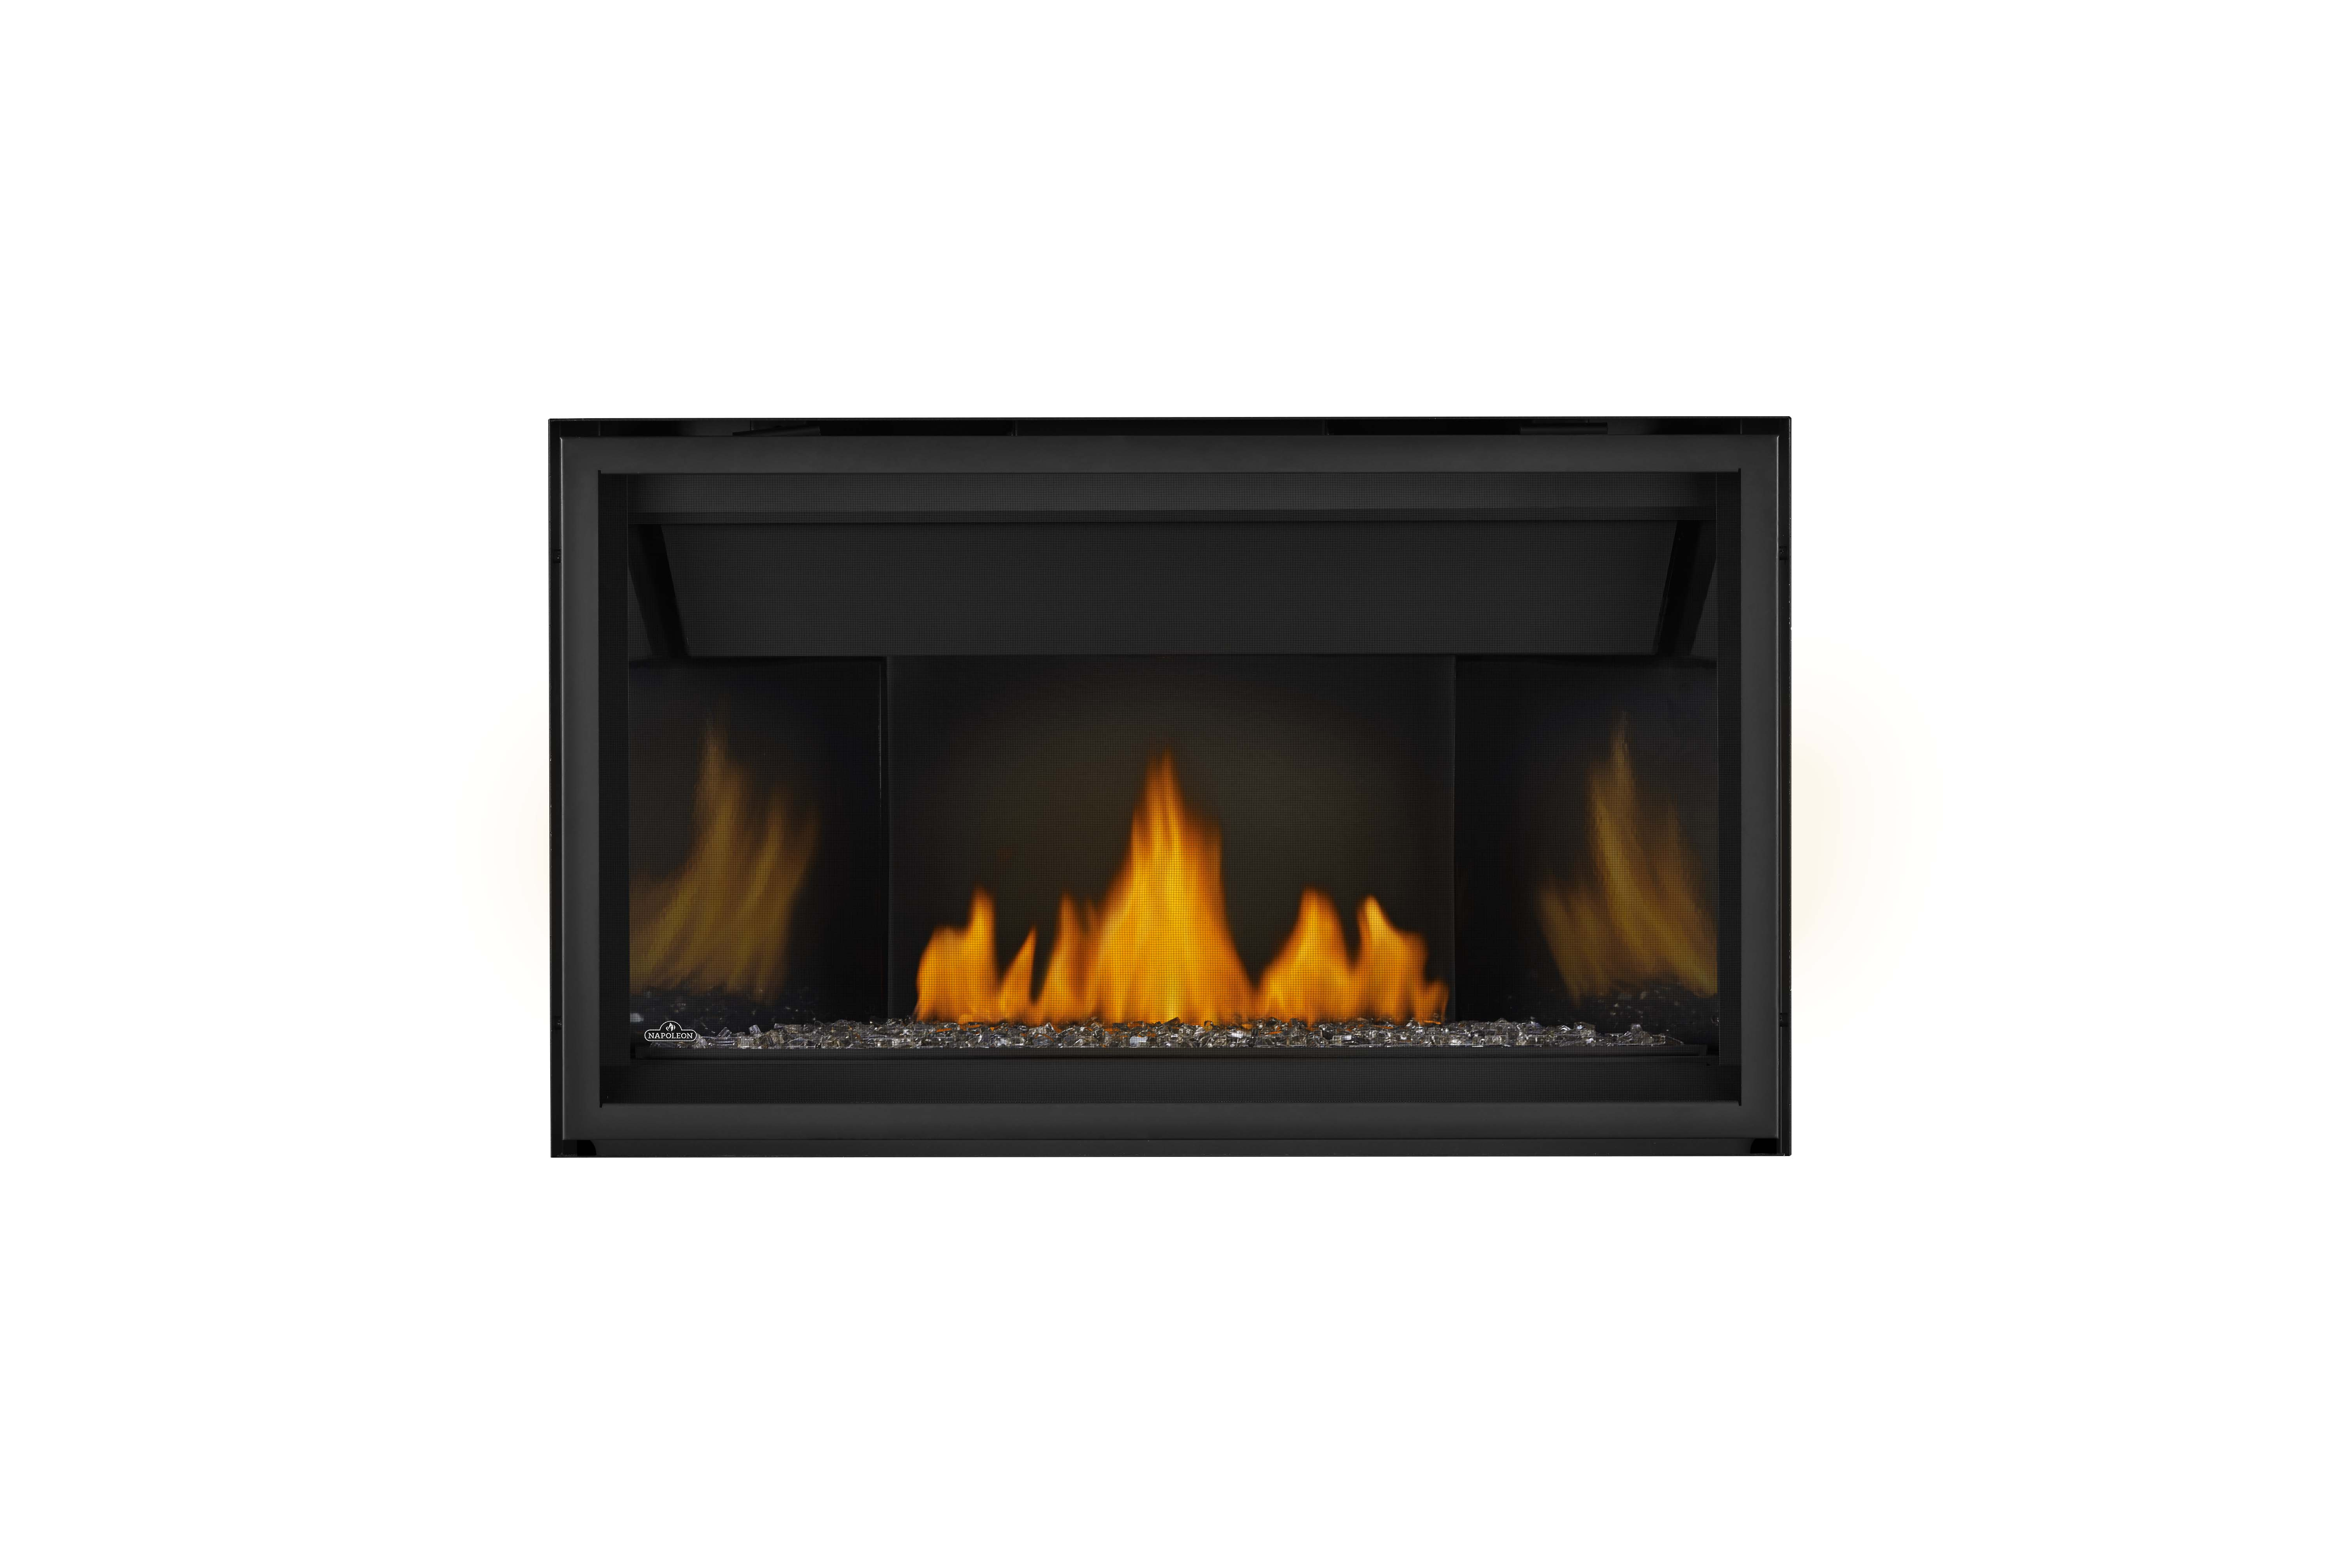 for and pict photos screen styles southern architectural fireplace files popular designs digest stunning living ideas glass tools aifaresidencycom awesome